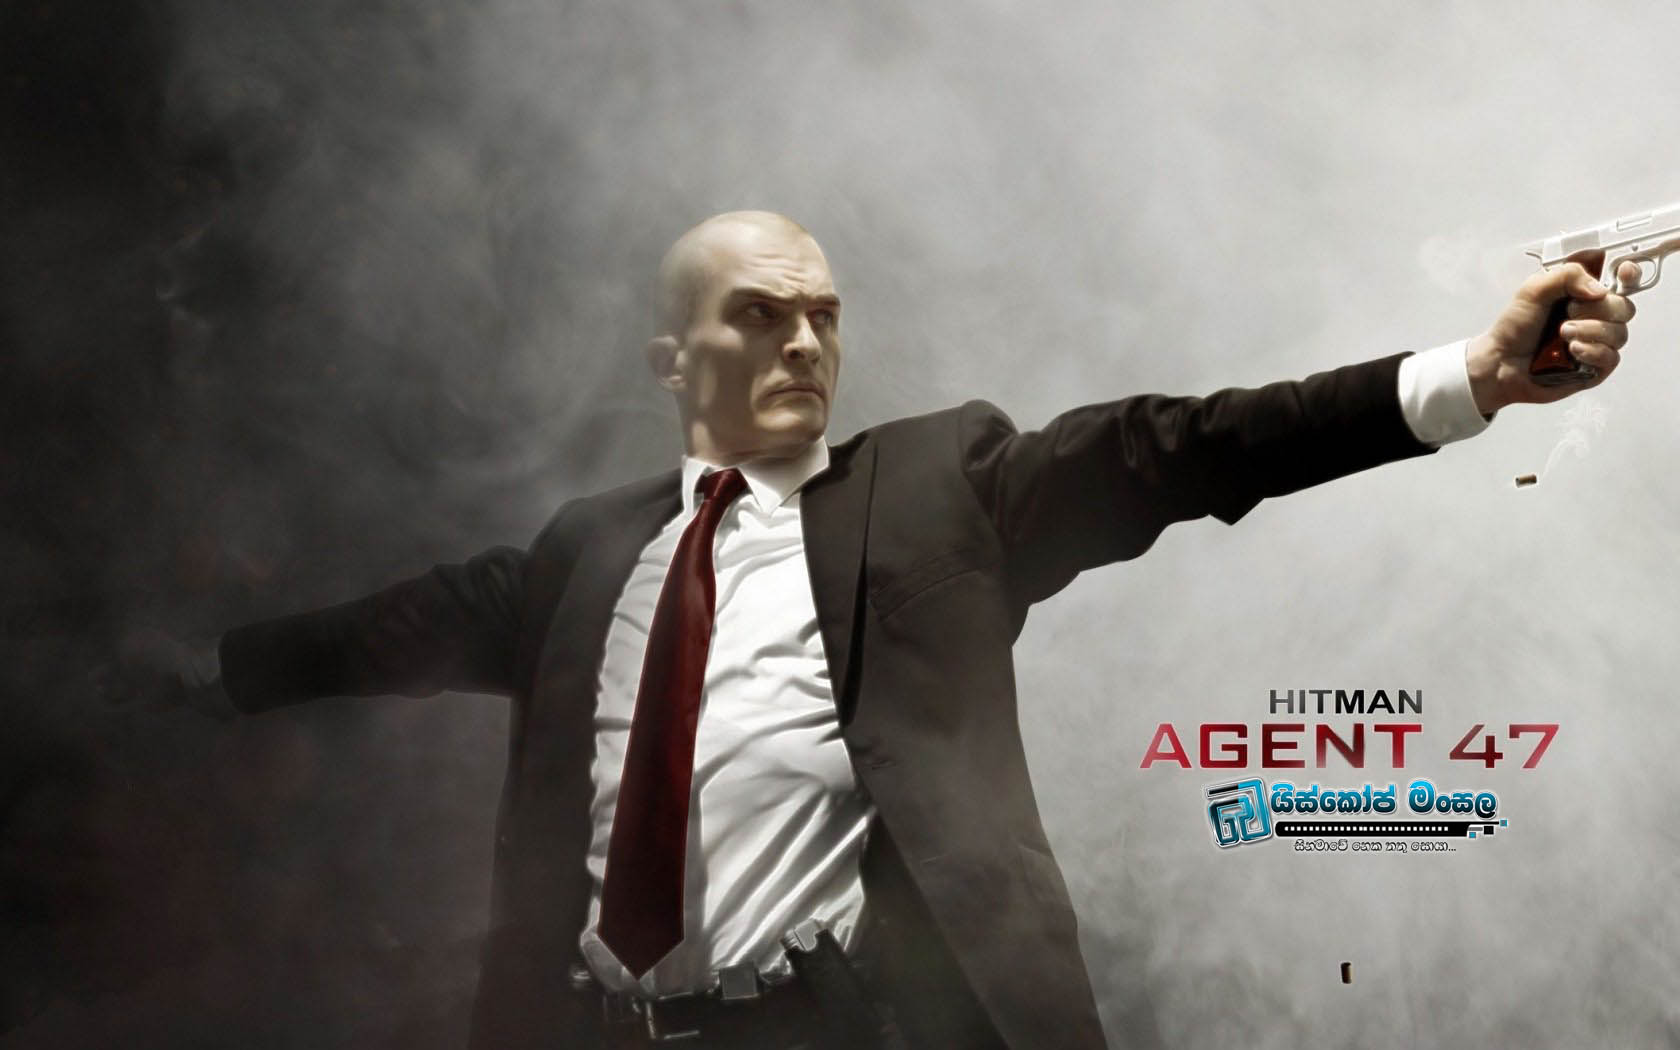 hitman-agent-47-movie-wide